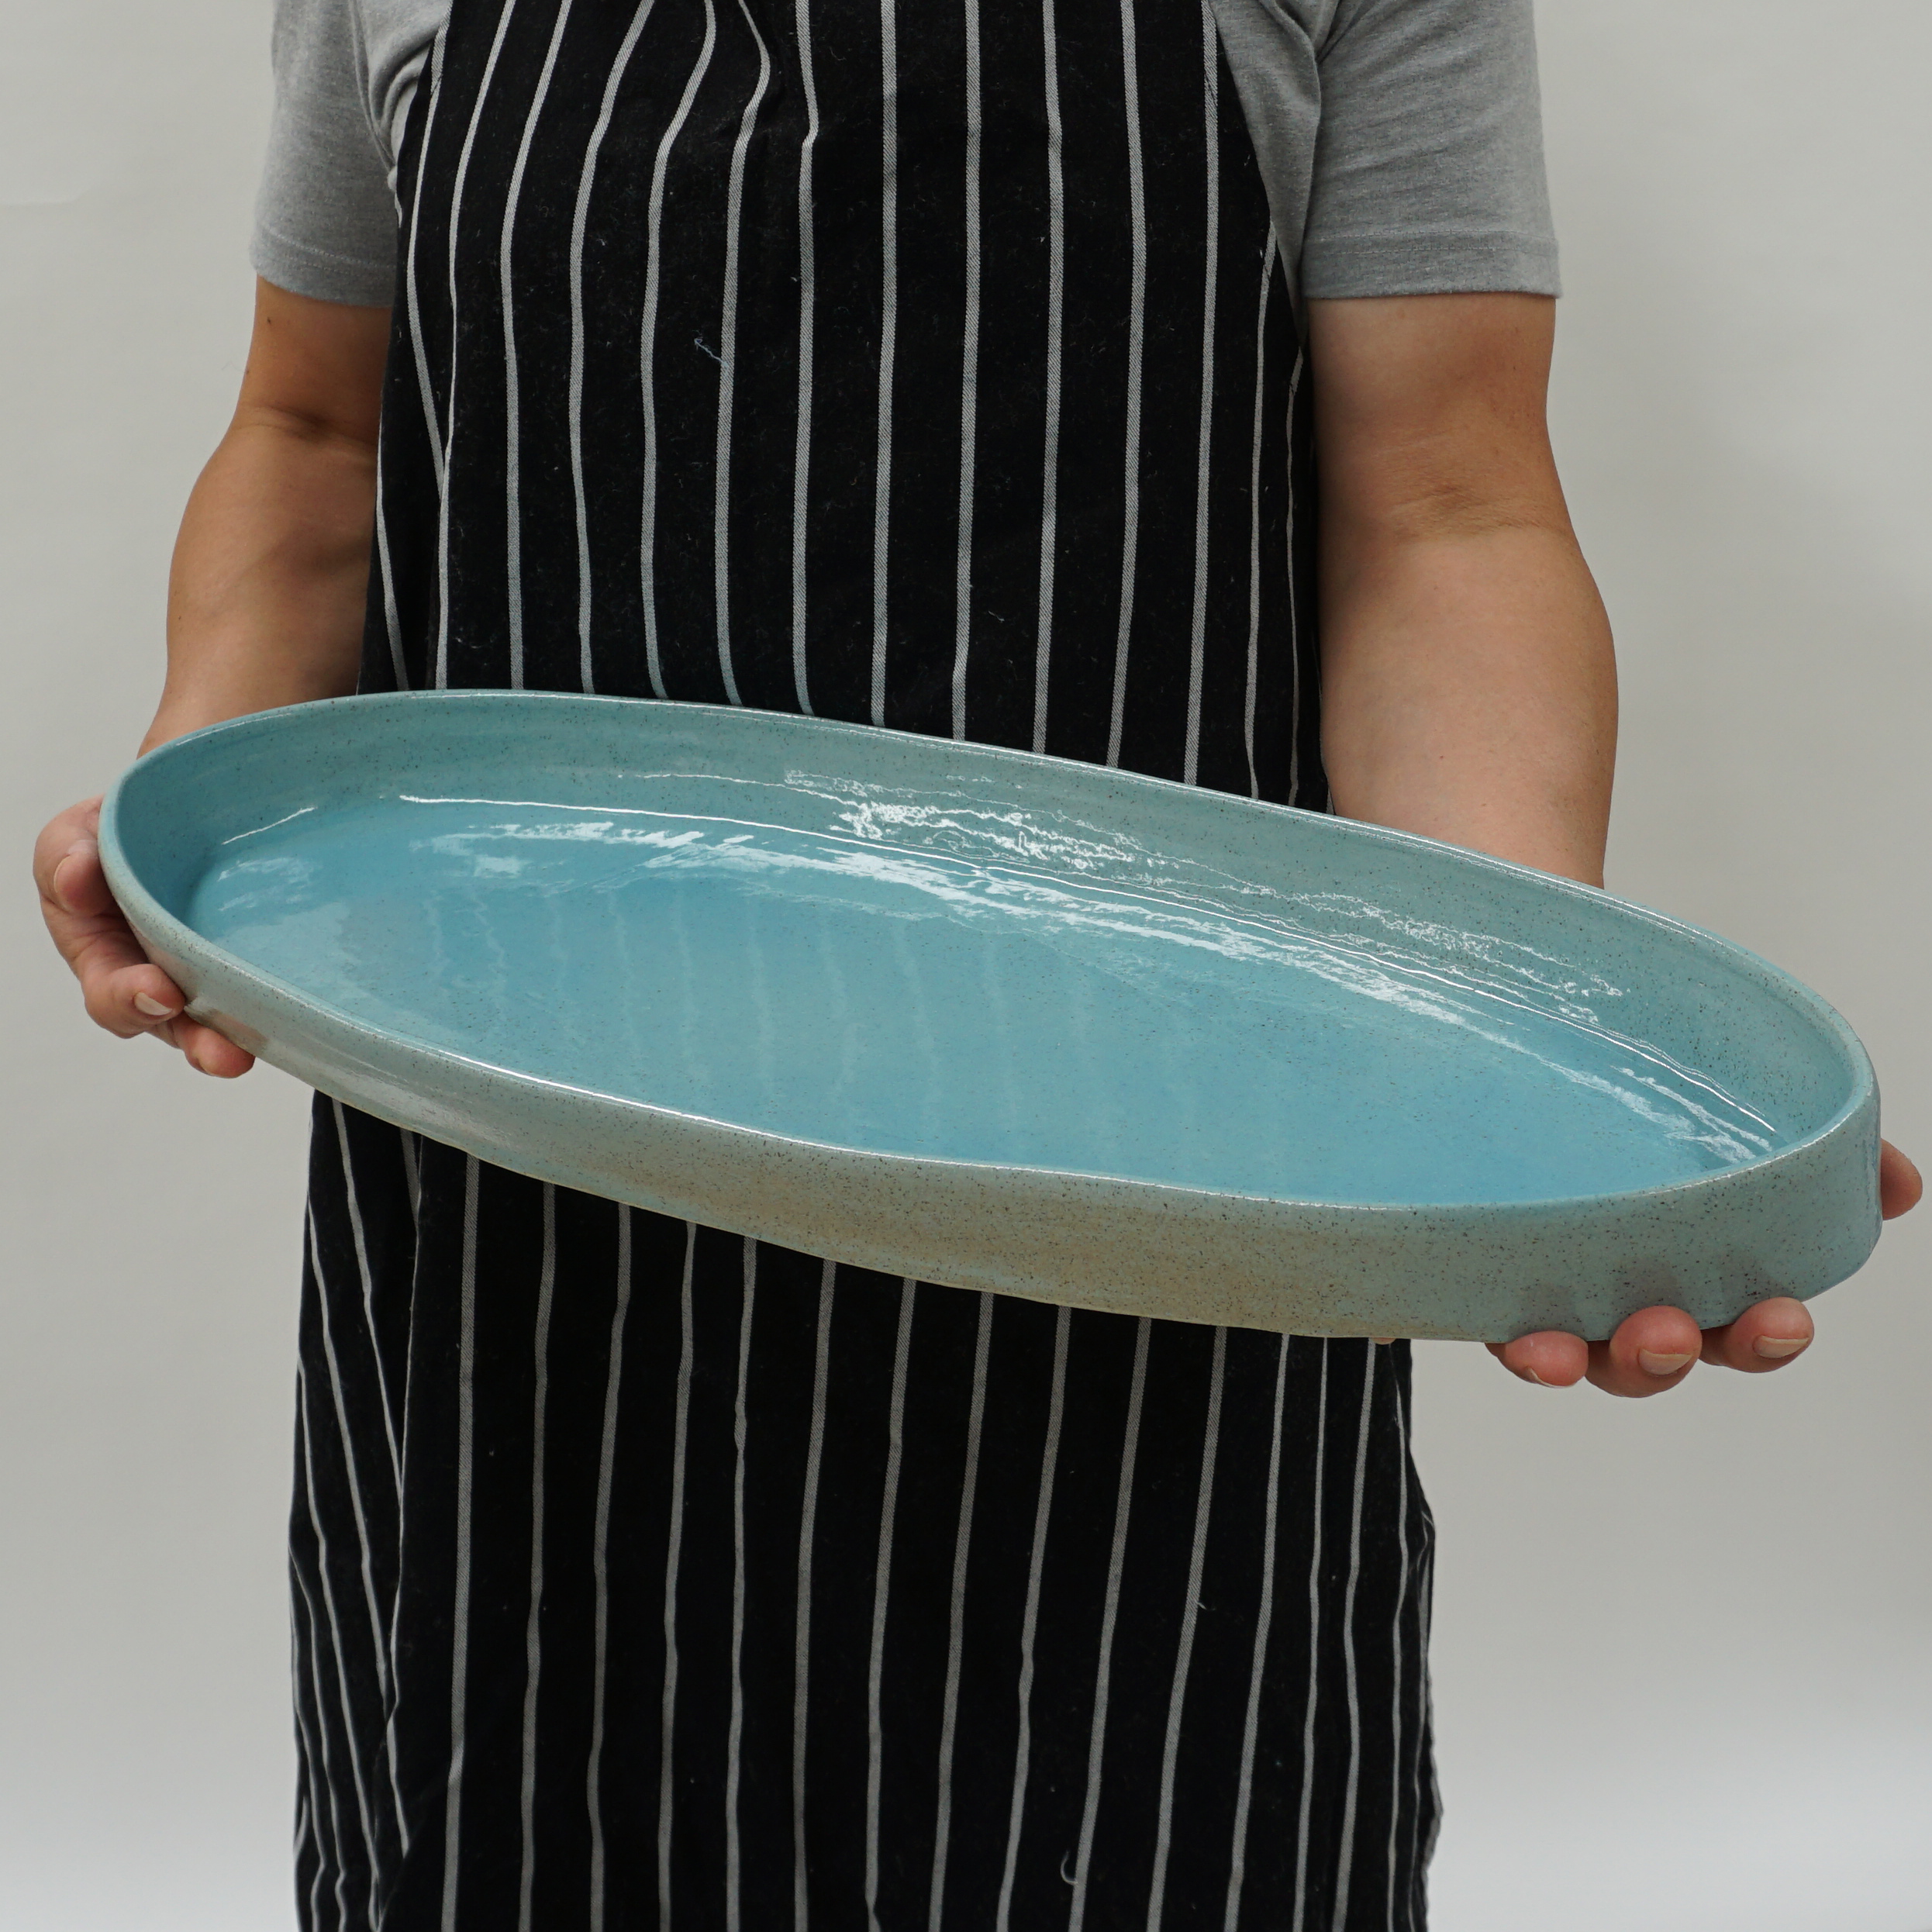 tufts salmon dish in turquoise